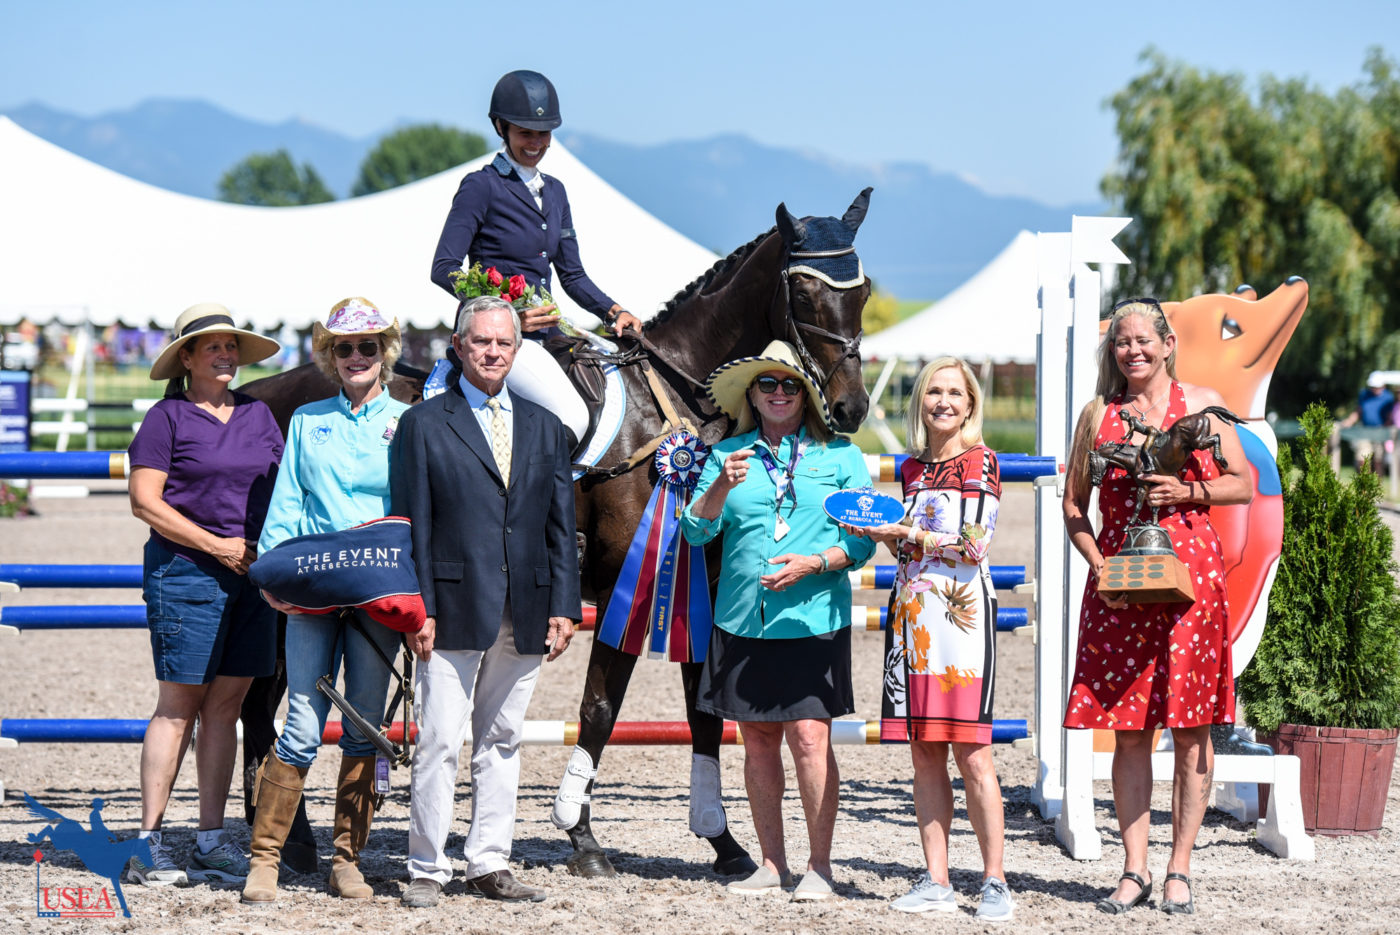 CCI3* - 1st - Frankie Thieriot-Stutes and Chatwin